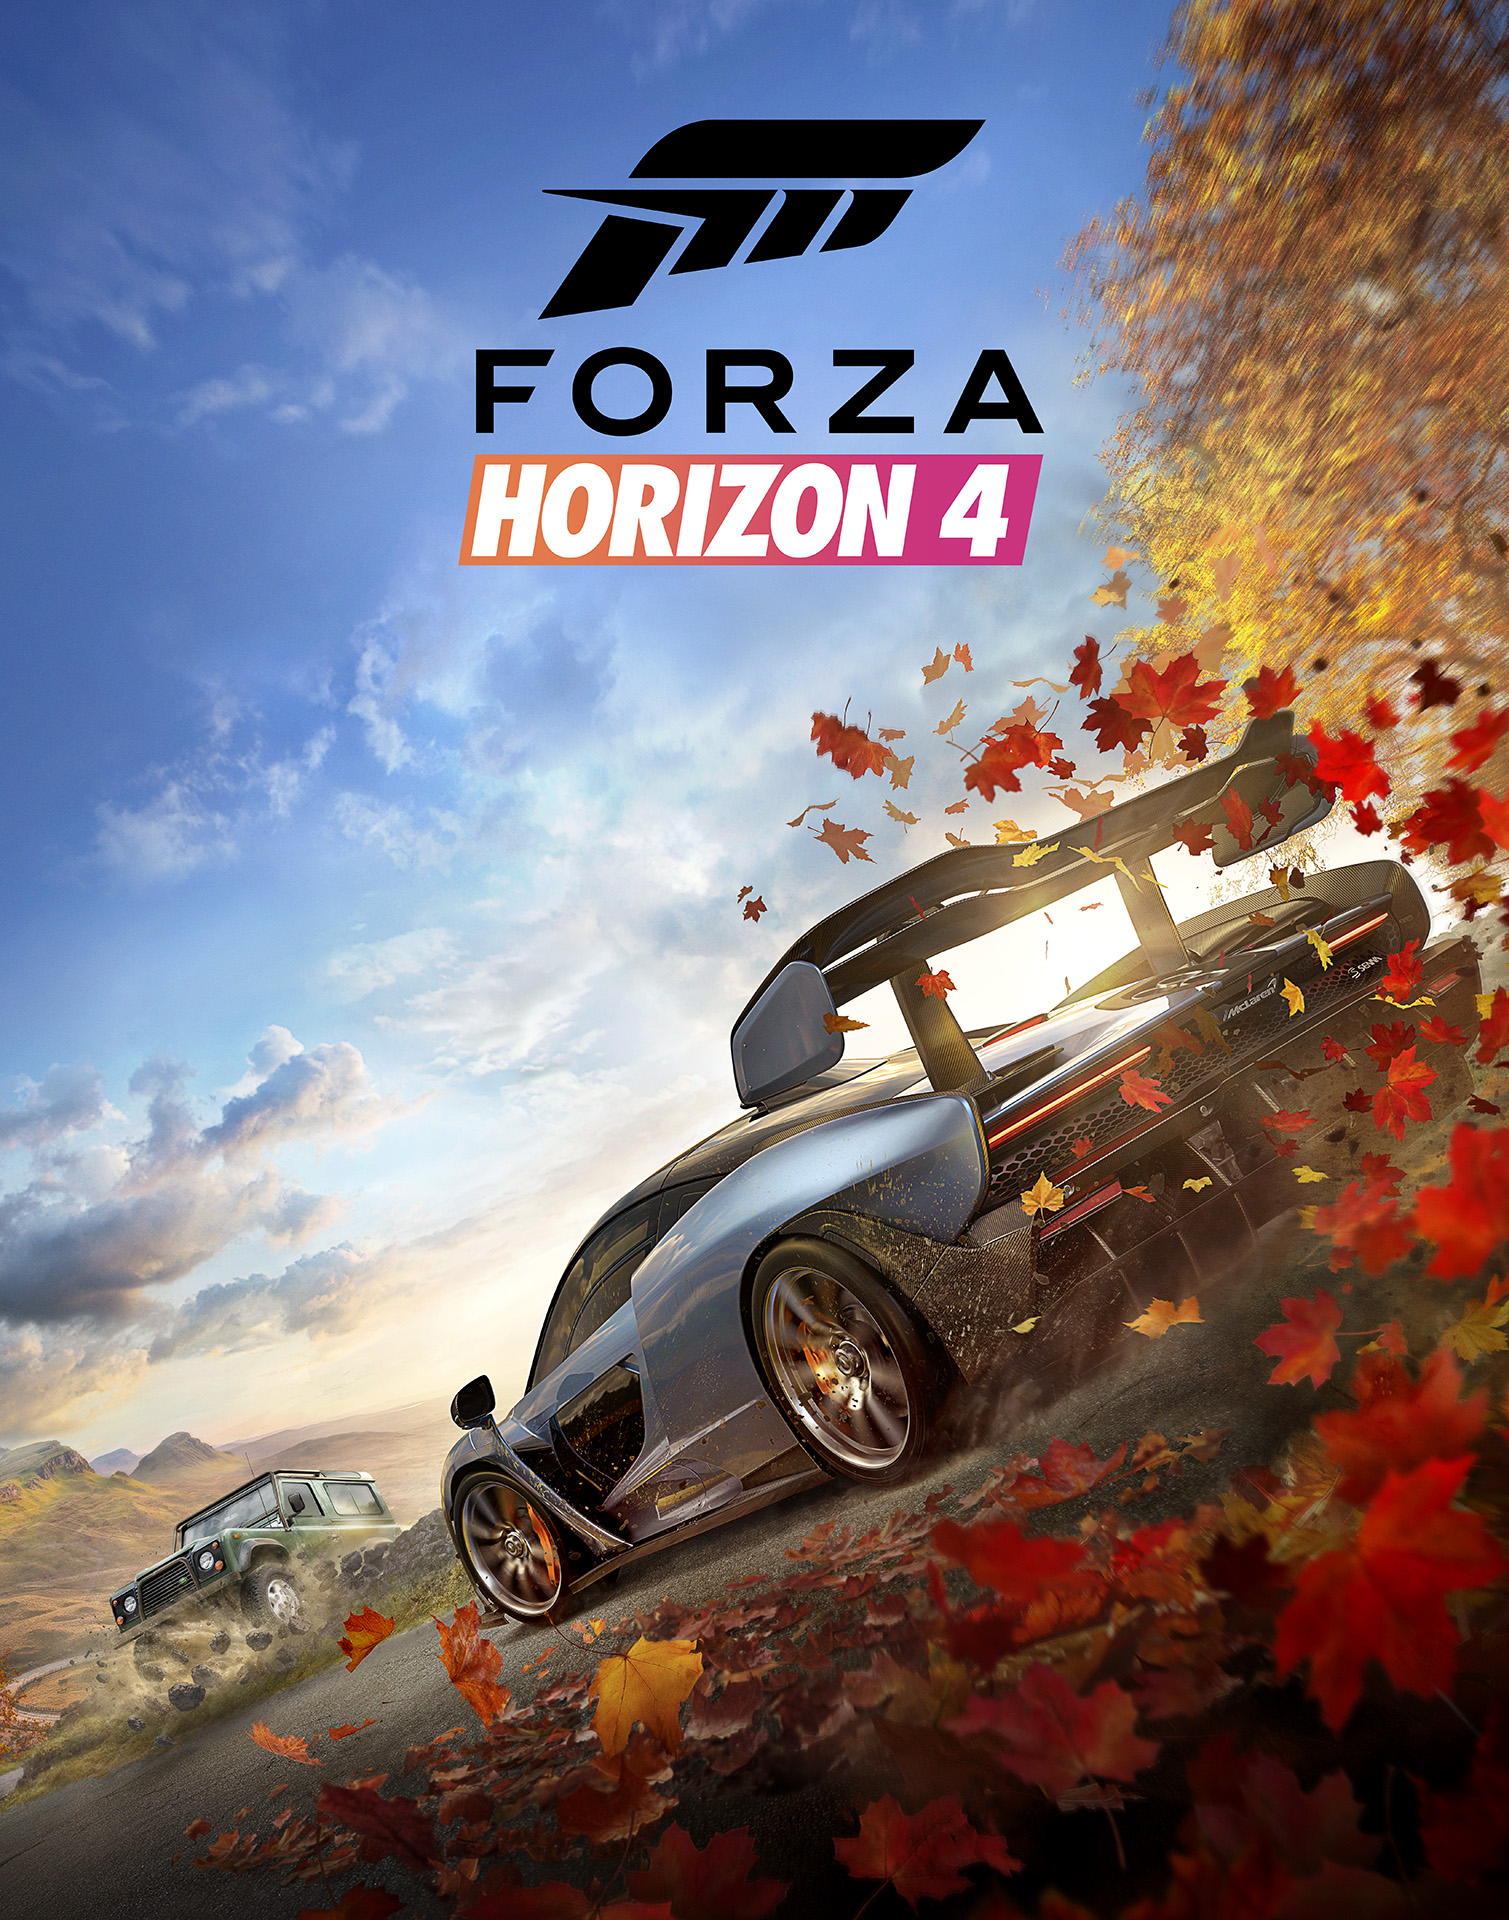 Forza Horizon 4 | Forza Motorsport Wiki | FANDOM powered by